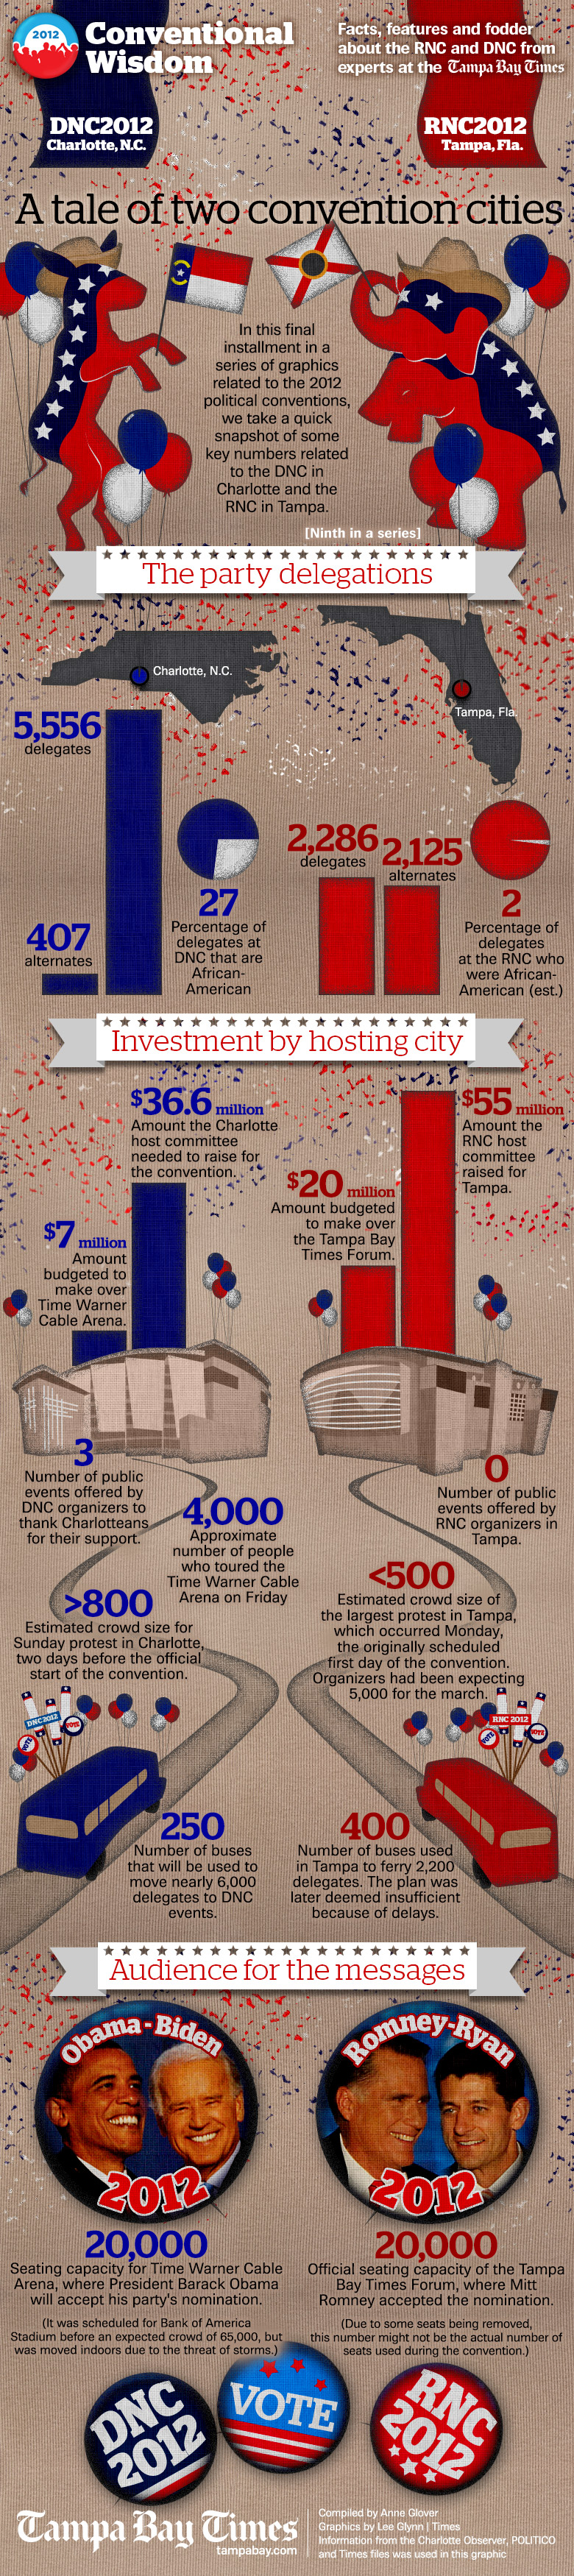 conventional-wisdom-dnc2012-facts-and-figures_5047b43a5be0e